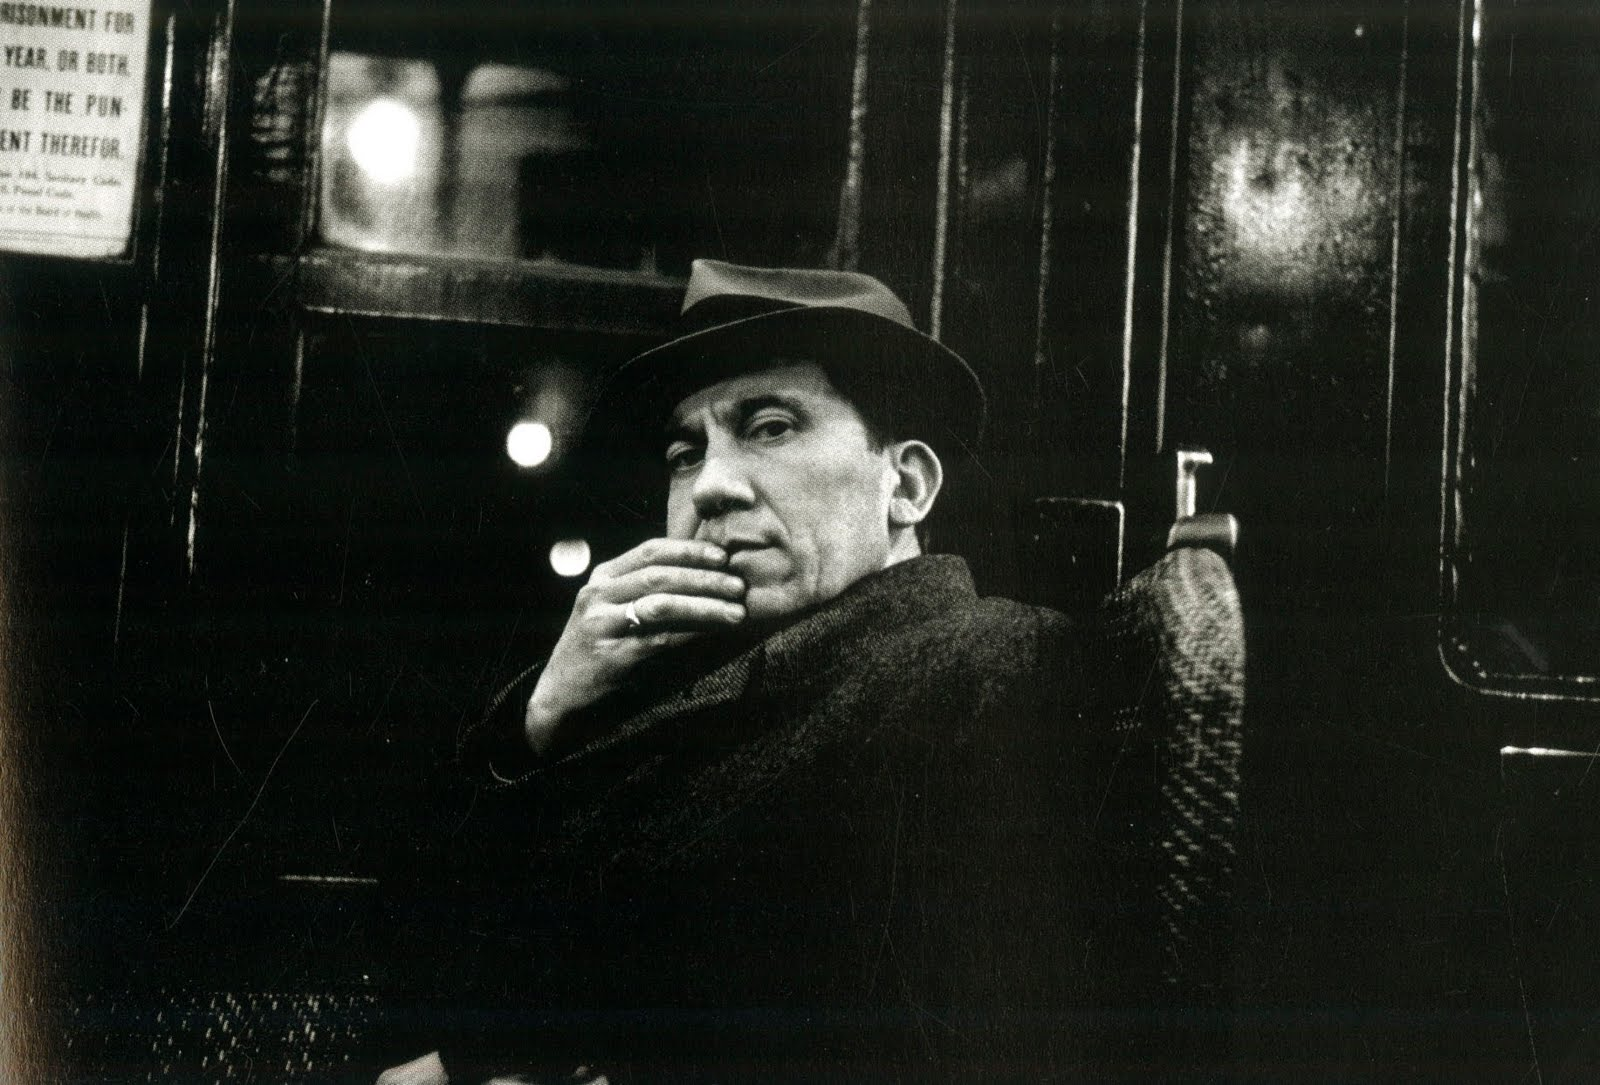 walker evans I want to write about a photographer that most art and photography students know, but not that many street photographers know (or appreciate) online that photographer is walker evans, one of the most pivotal american photographer from the 20th century.